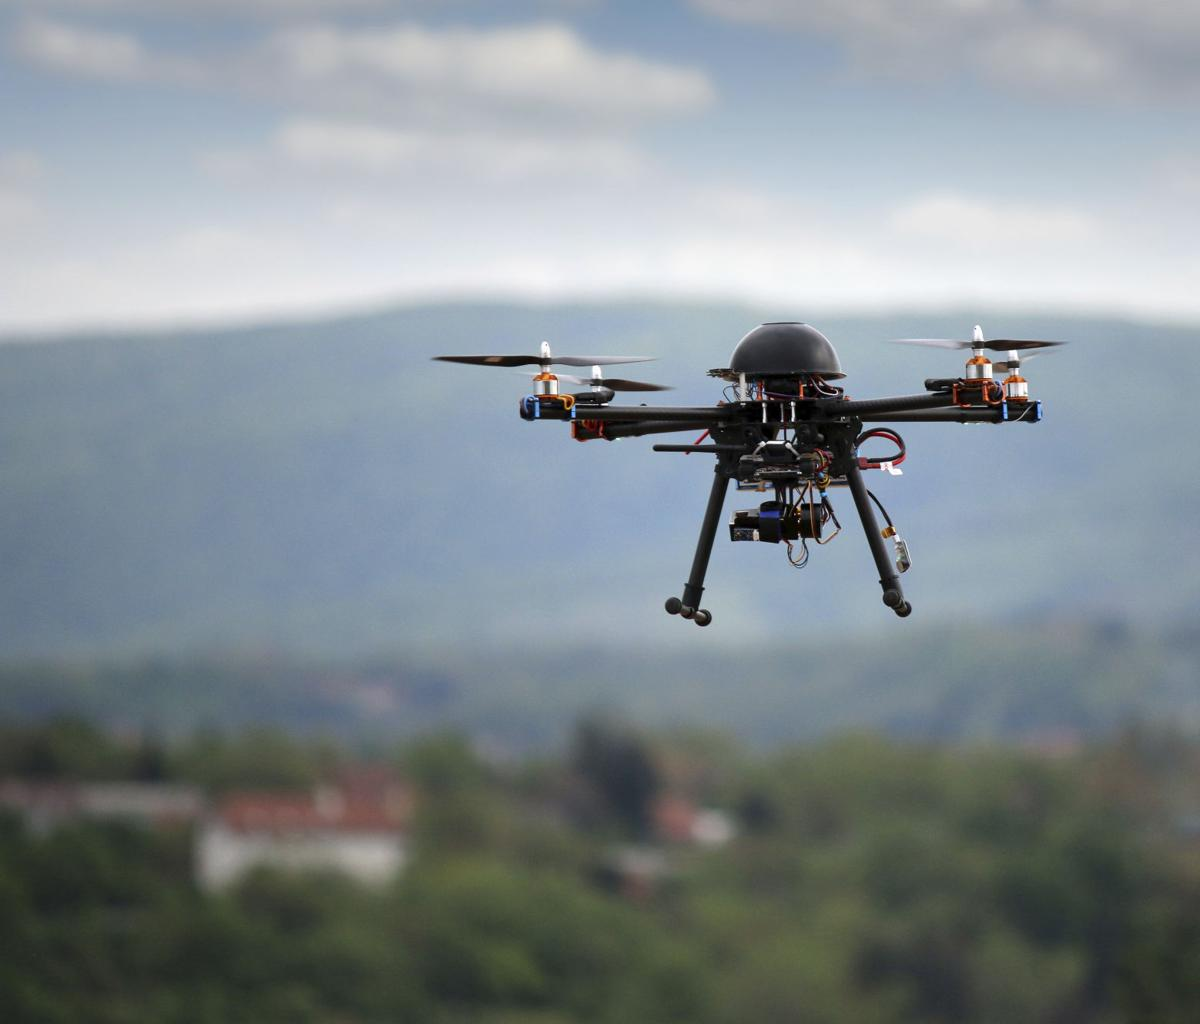 Drones to be more regulated